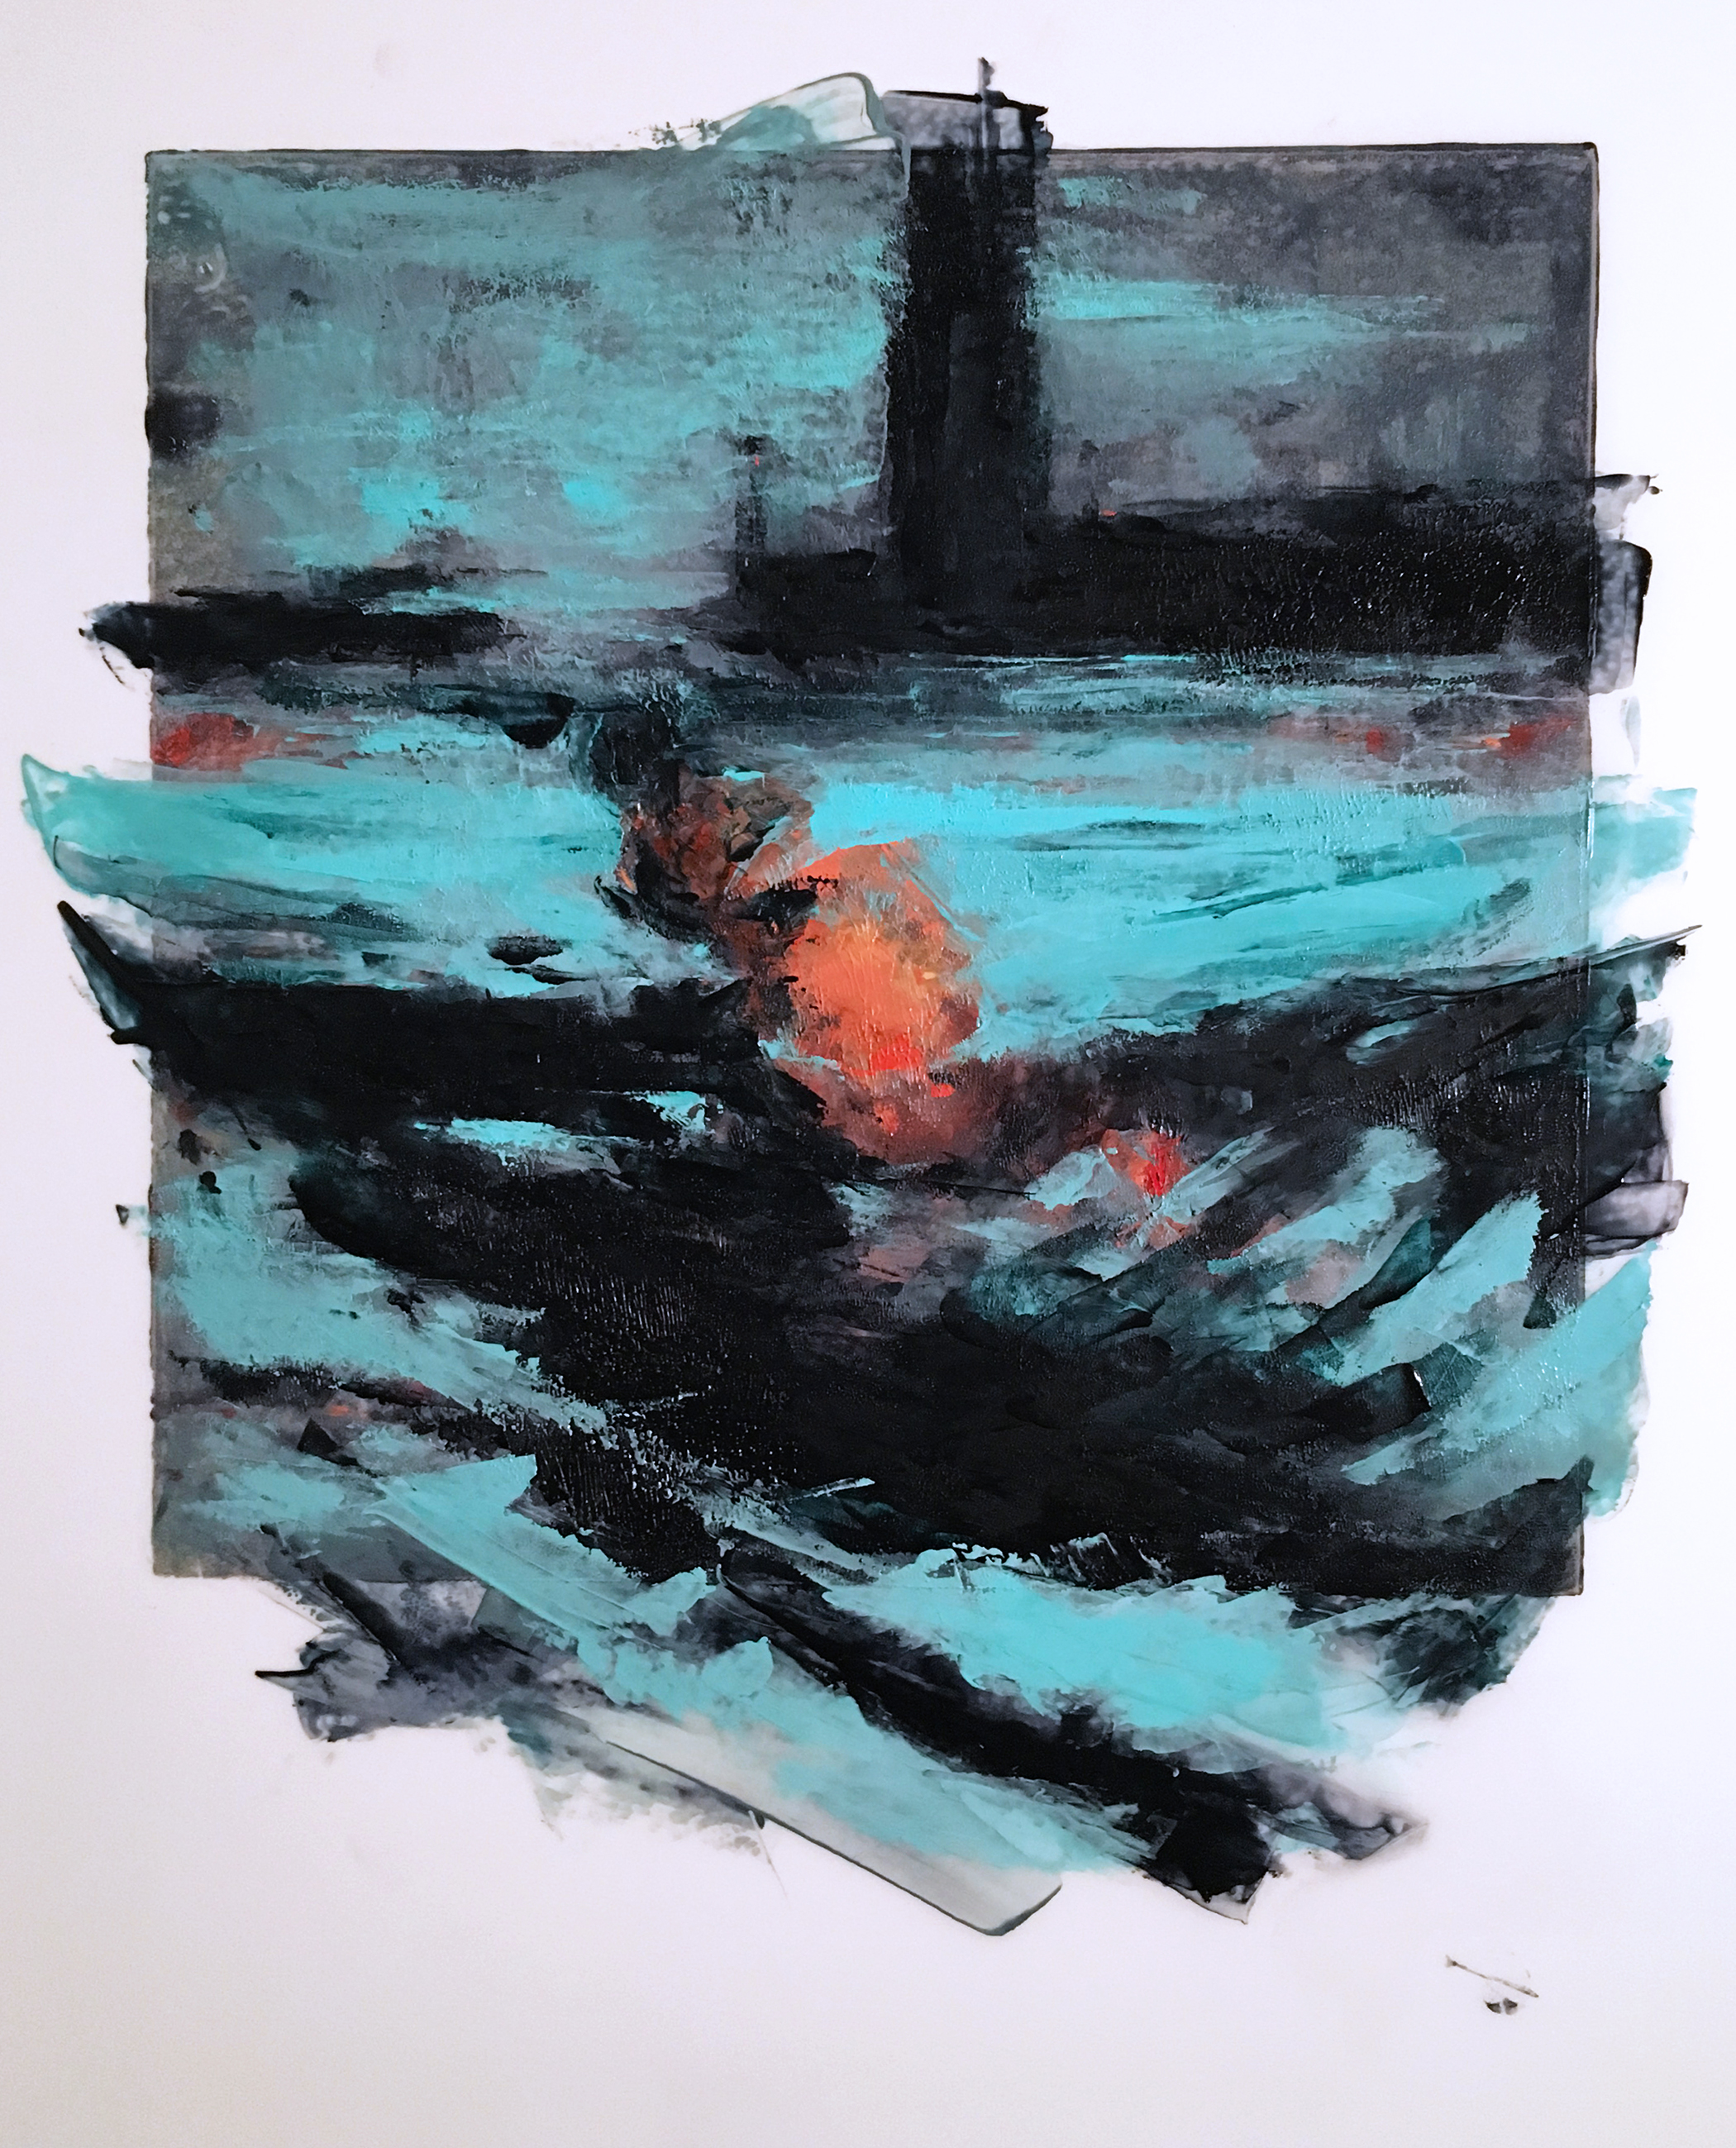 """'Processing the Scape: Harbor Ribs', painted monotype on Mylar, 24"""" x 18"""", 2016"""